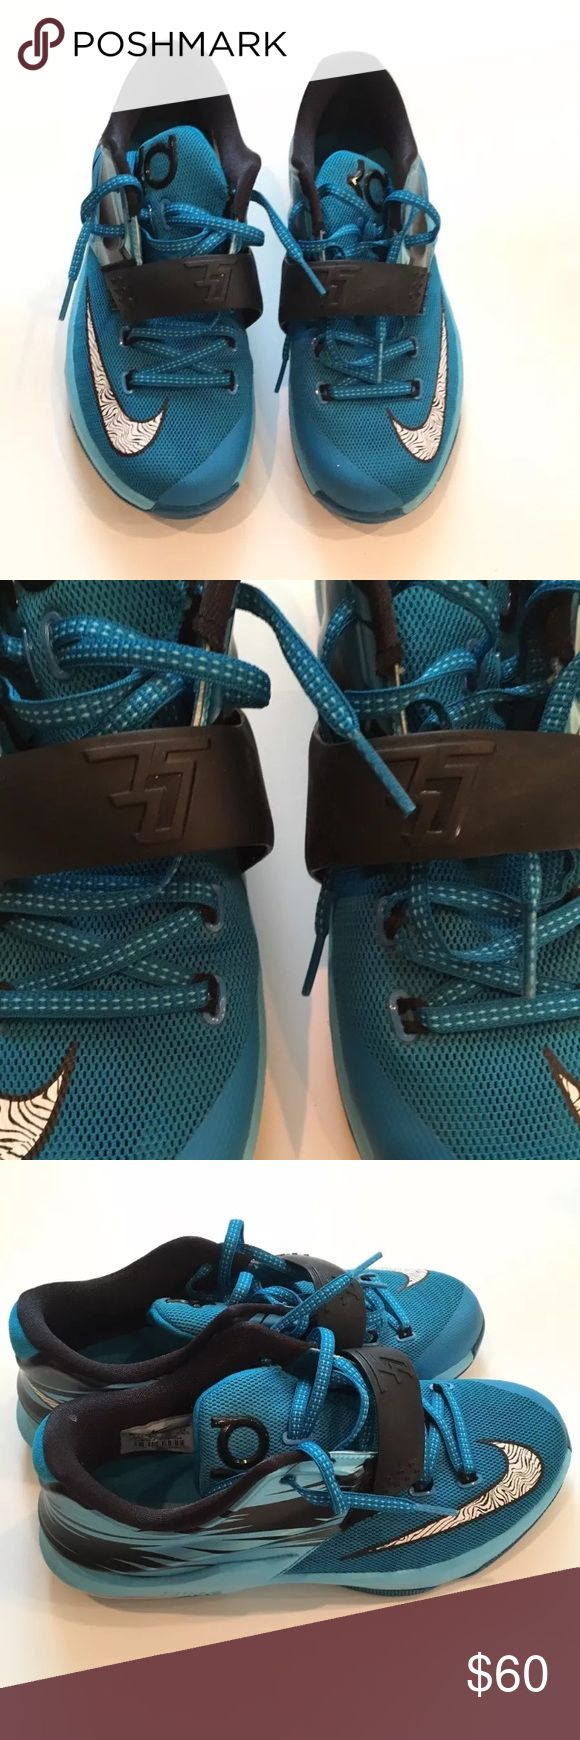 Nike Air Teal Kevin Durant's Men's Nike Air Zoom KD 7 ClearWater Kevin Durant's Teal Blue - SIZE 5.5                                  - Good Condition/ Slight Signs of WEAR ( refer to pictures ) Kevin Durant's Shoes Sneakers